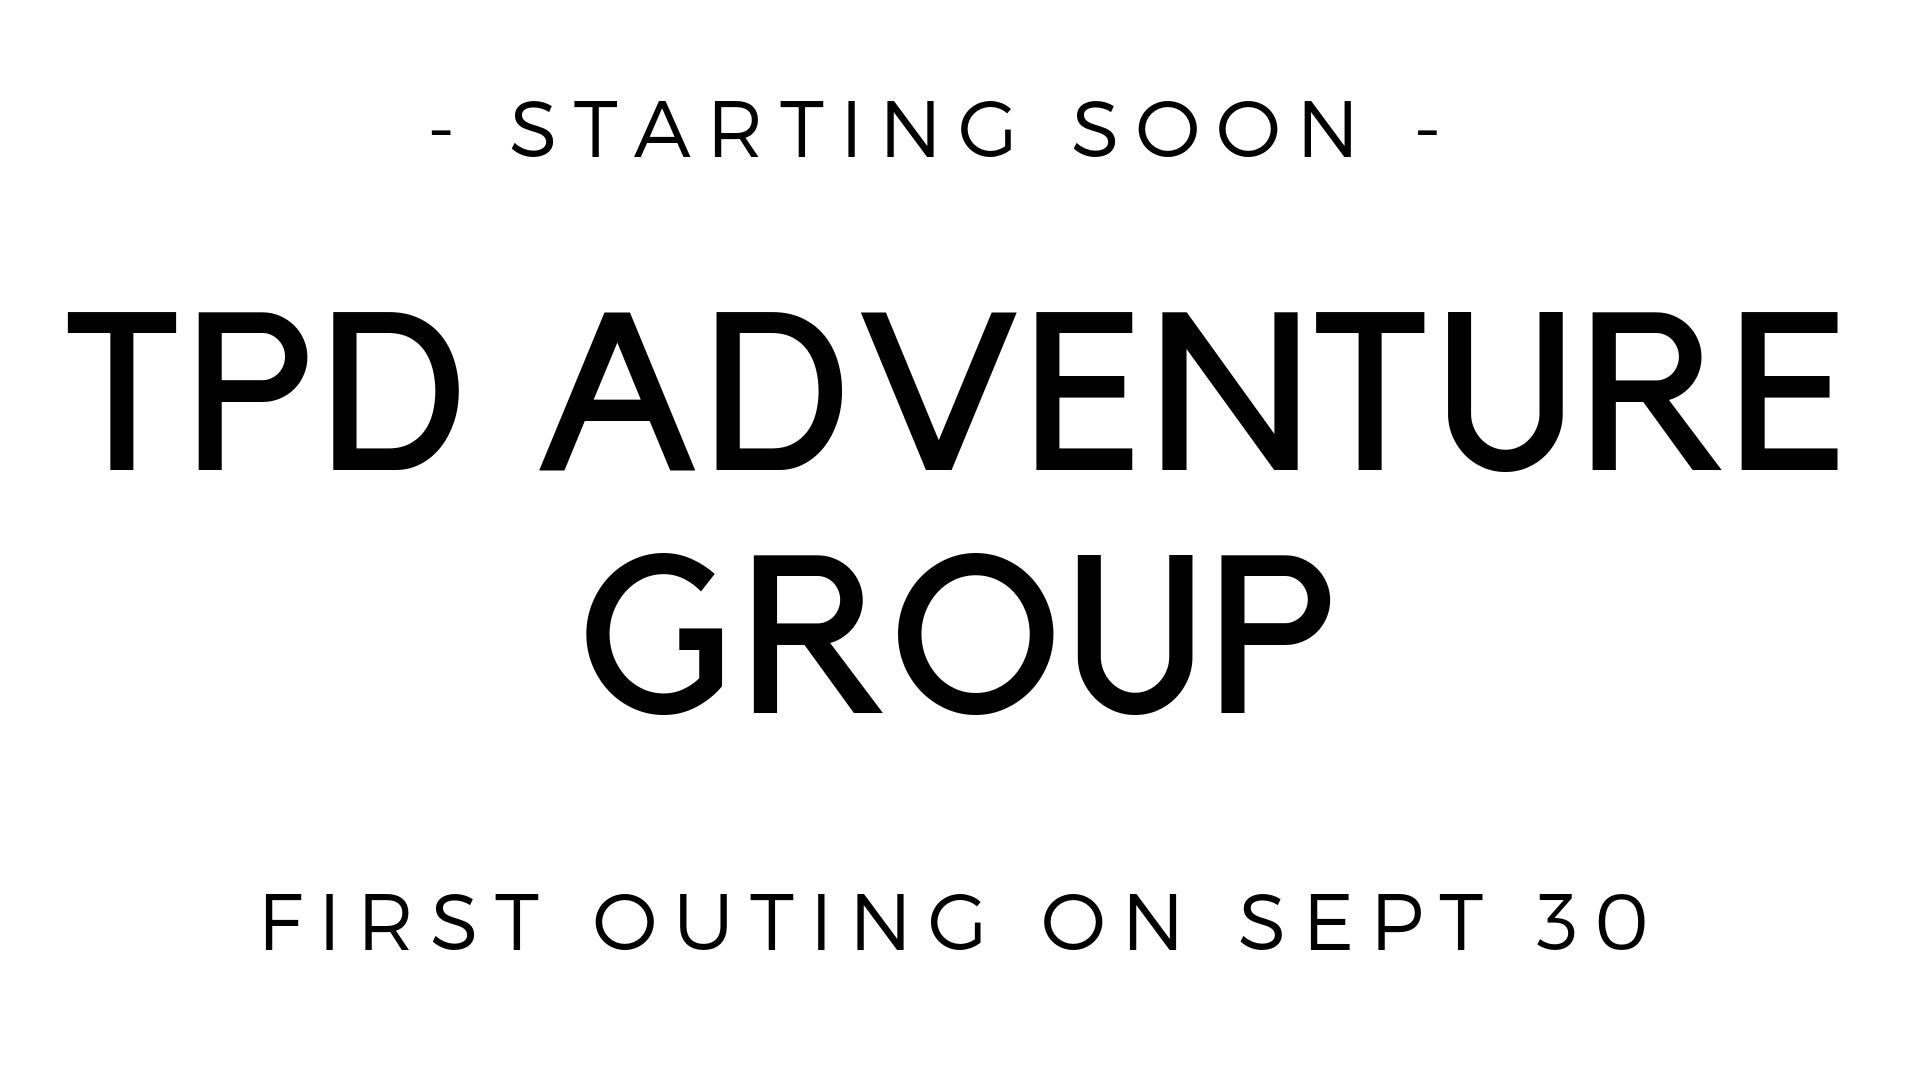 The first ever TPD Adventure Group: On Sunday, Sept. 30 right after church, we'll be carpooling to the Indiana dunes for a hike, picnic and some fun on the beach there. Anyone is welcome, and this would be a great thing to invite people into who may not be familiar with our church. We're hoping to build from this and do many more outings going forward.